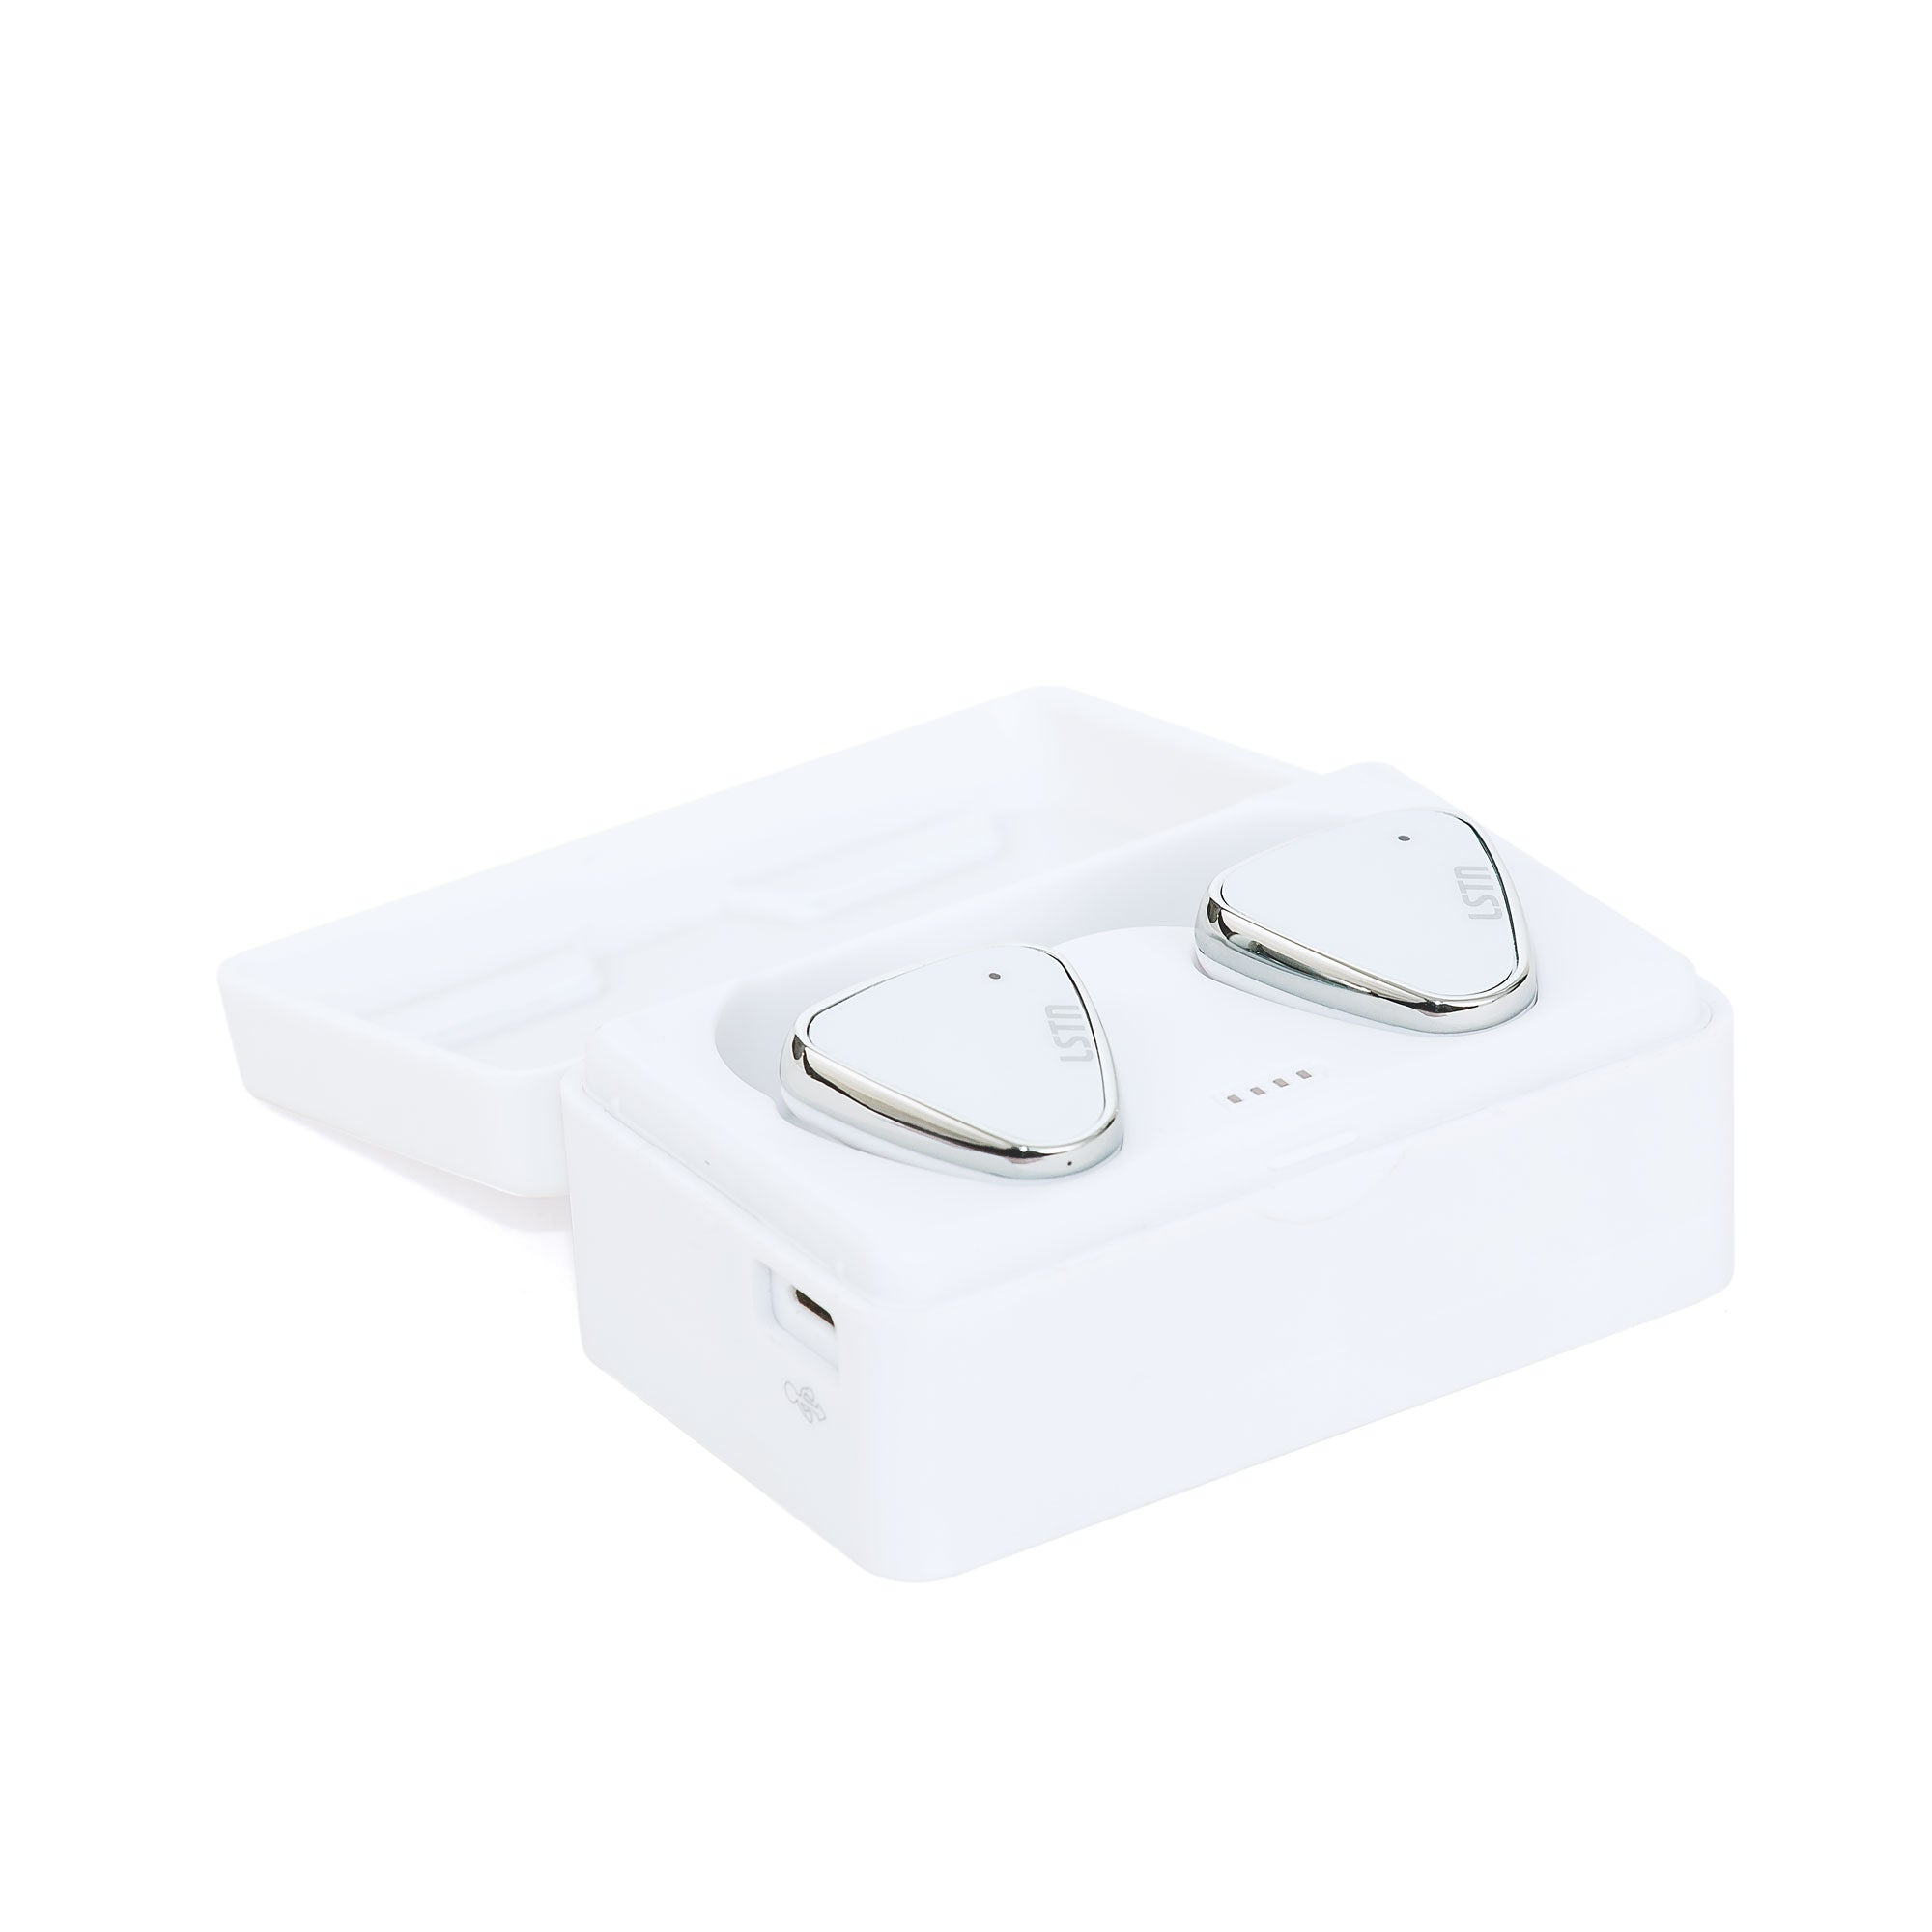 Beacon 2.0 True Wireless Earbuds in White